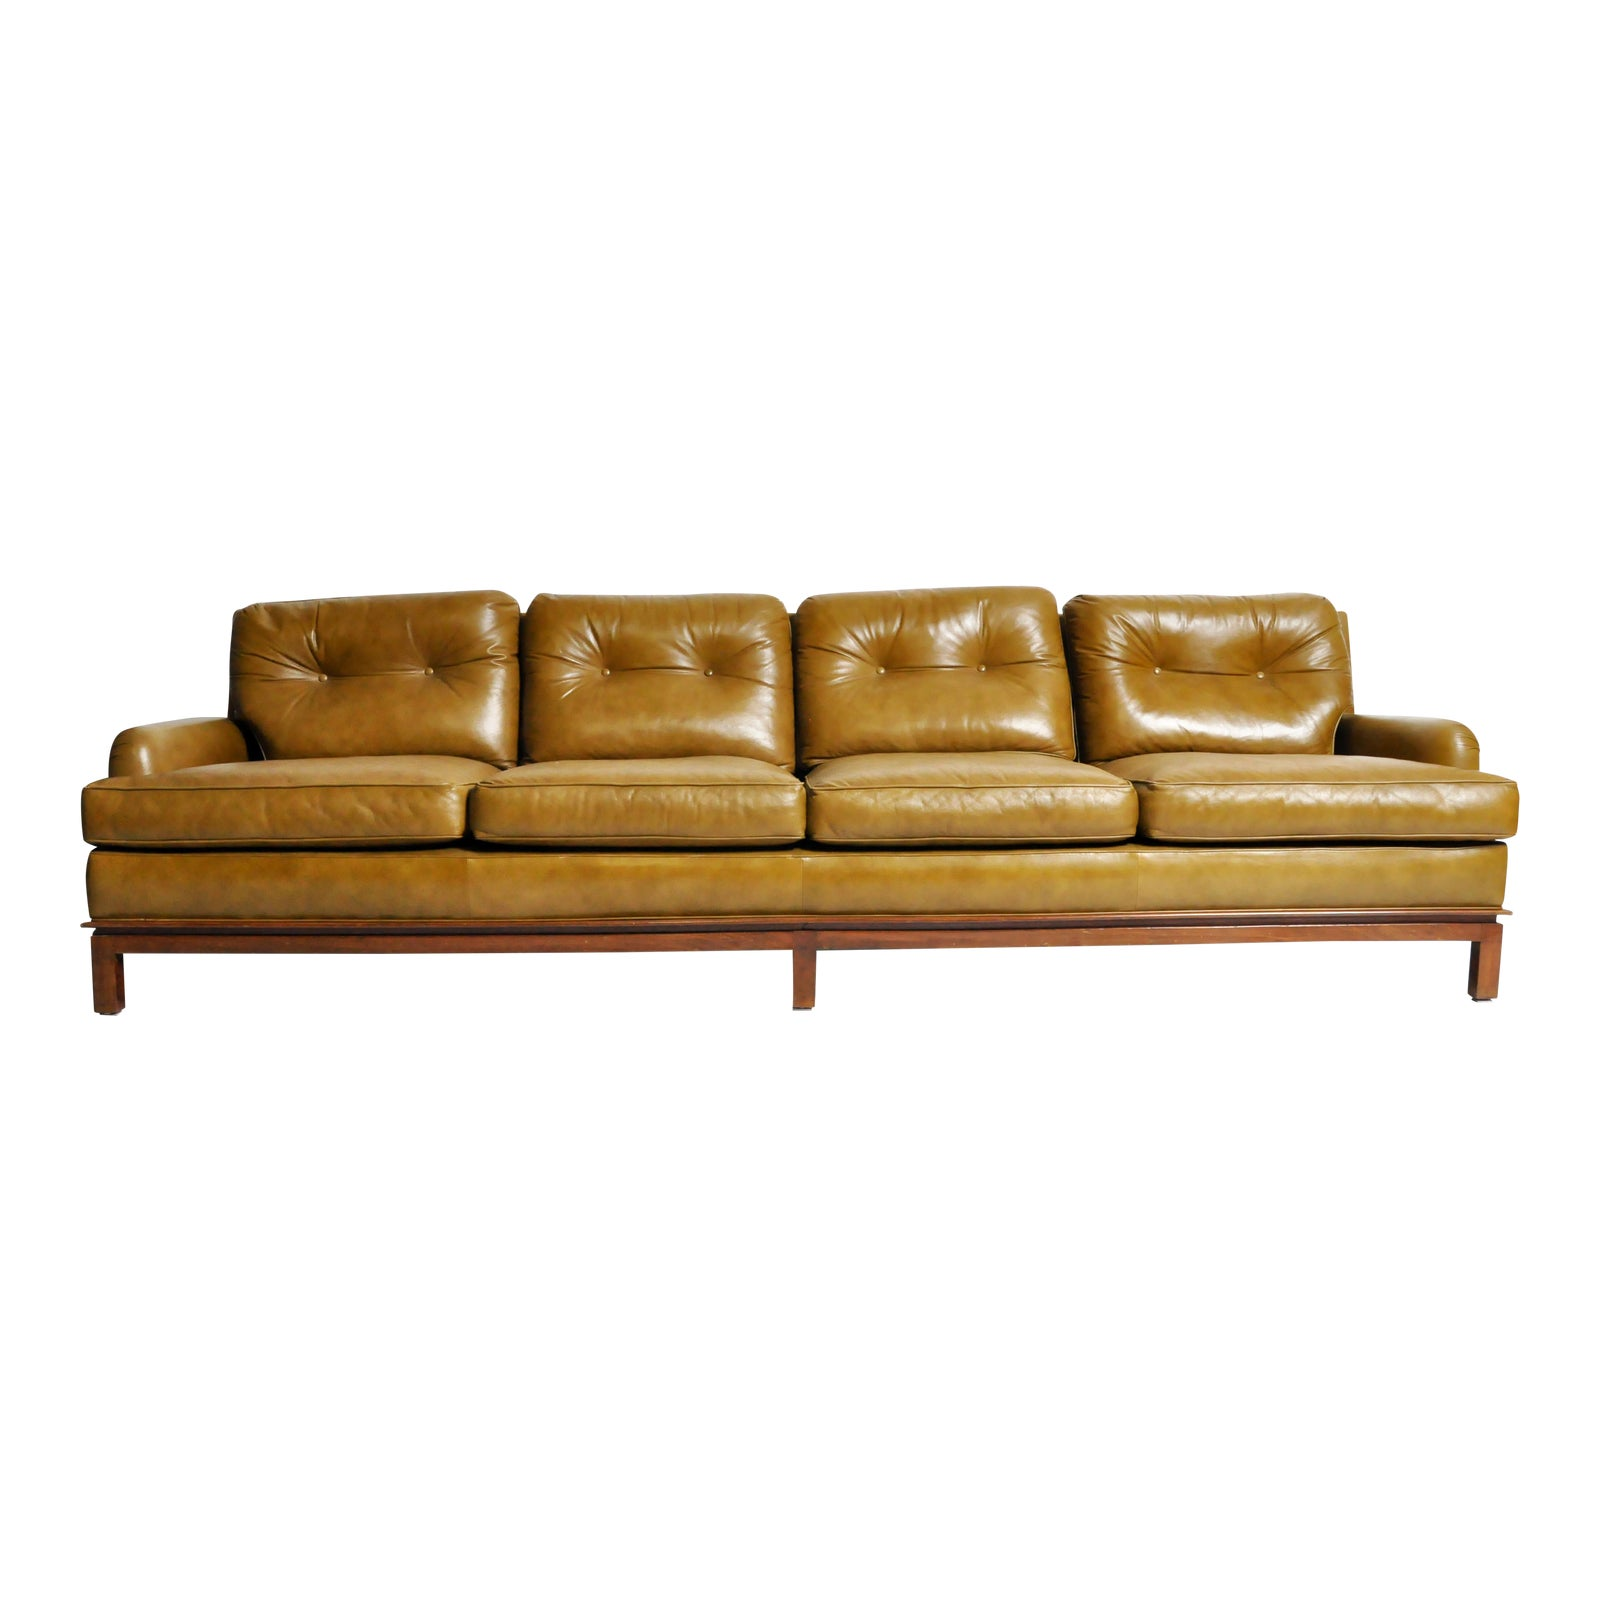 Excellent Mid-Century Modern Green Leather Sofa with Hardwood ...